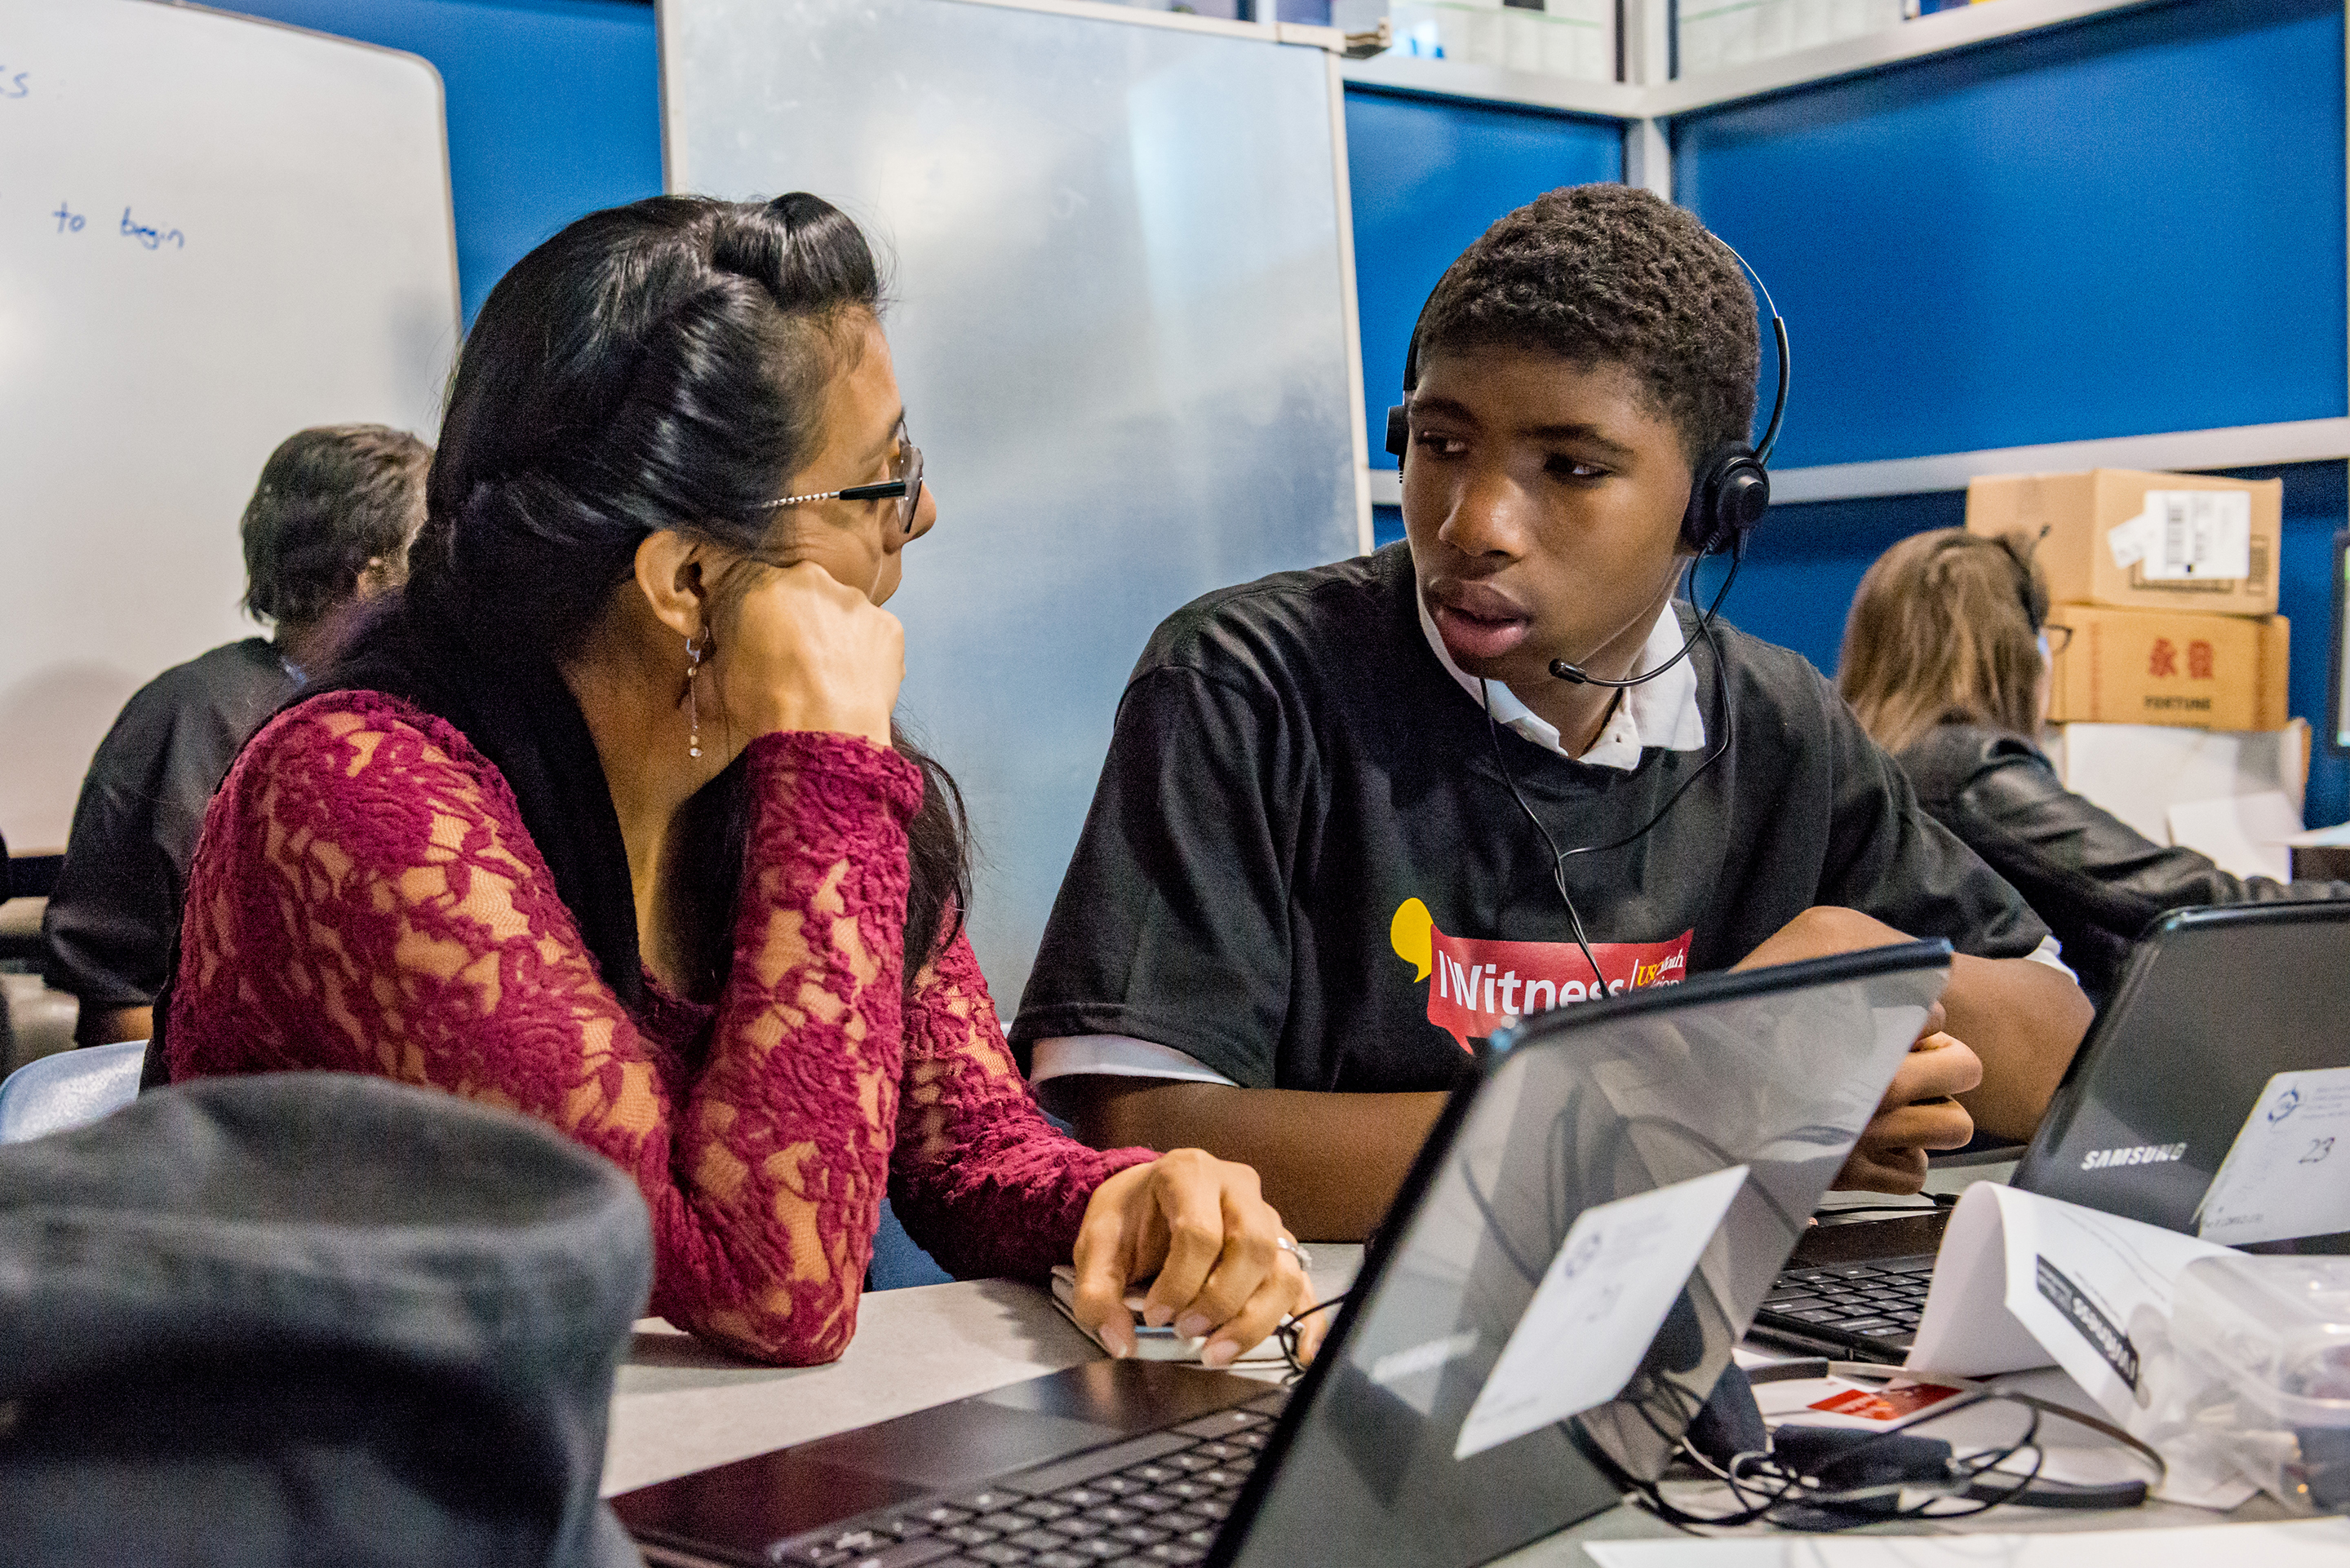 Lesly Culp, USC Shoah Foundation Senior Content Specialist/Trainer, works with a student on the IWitness activity